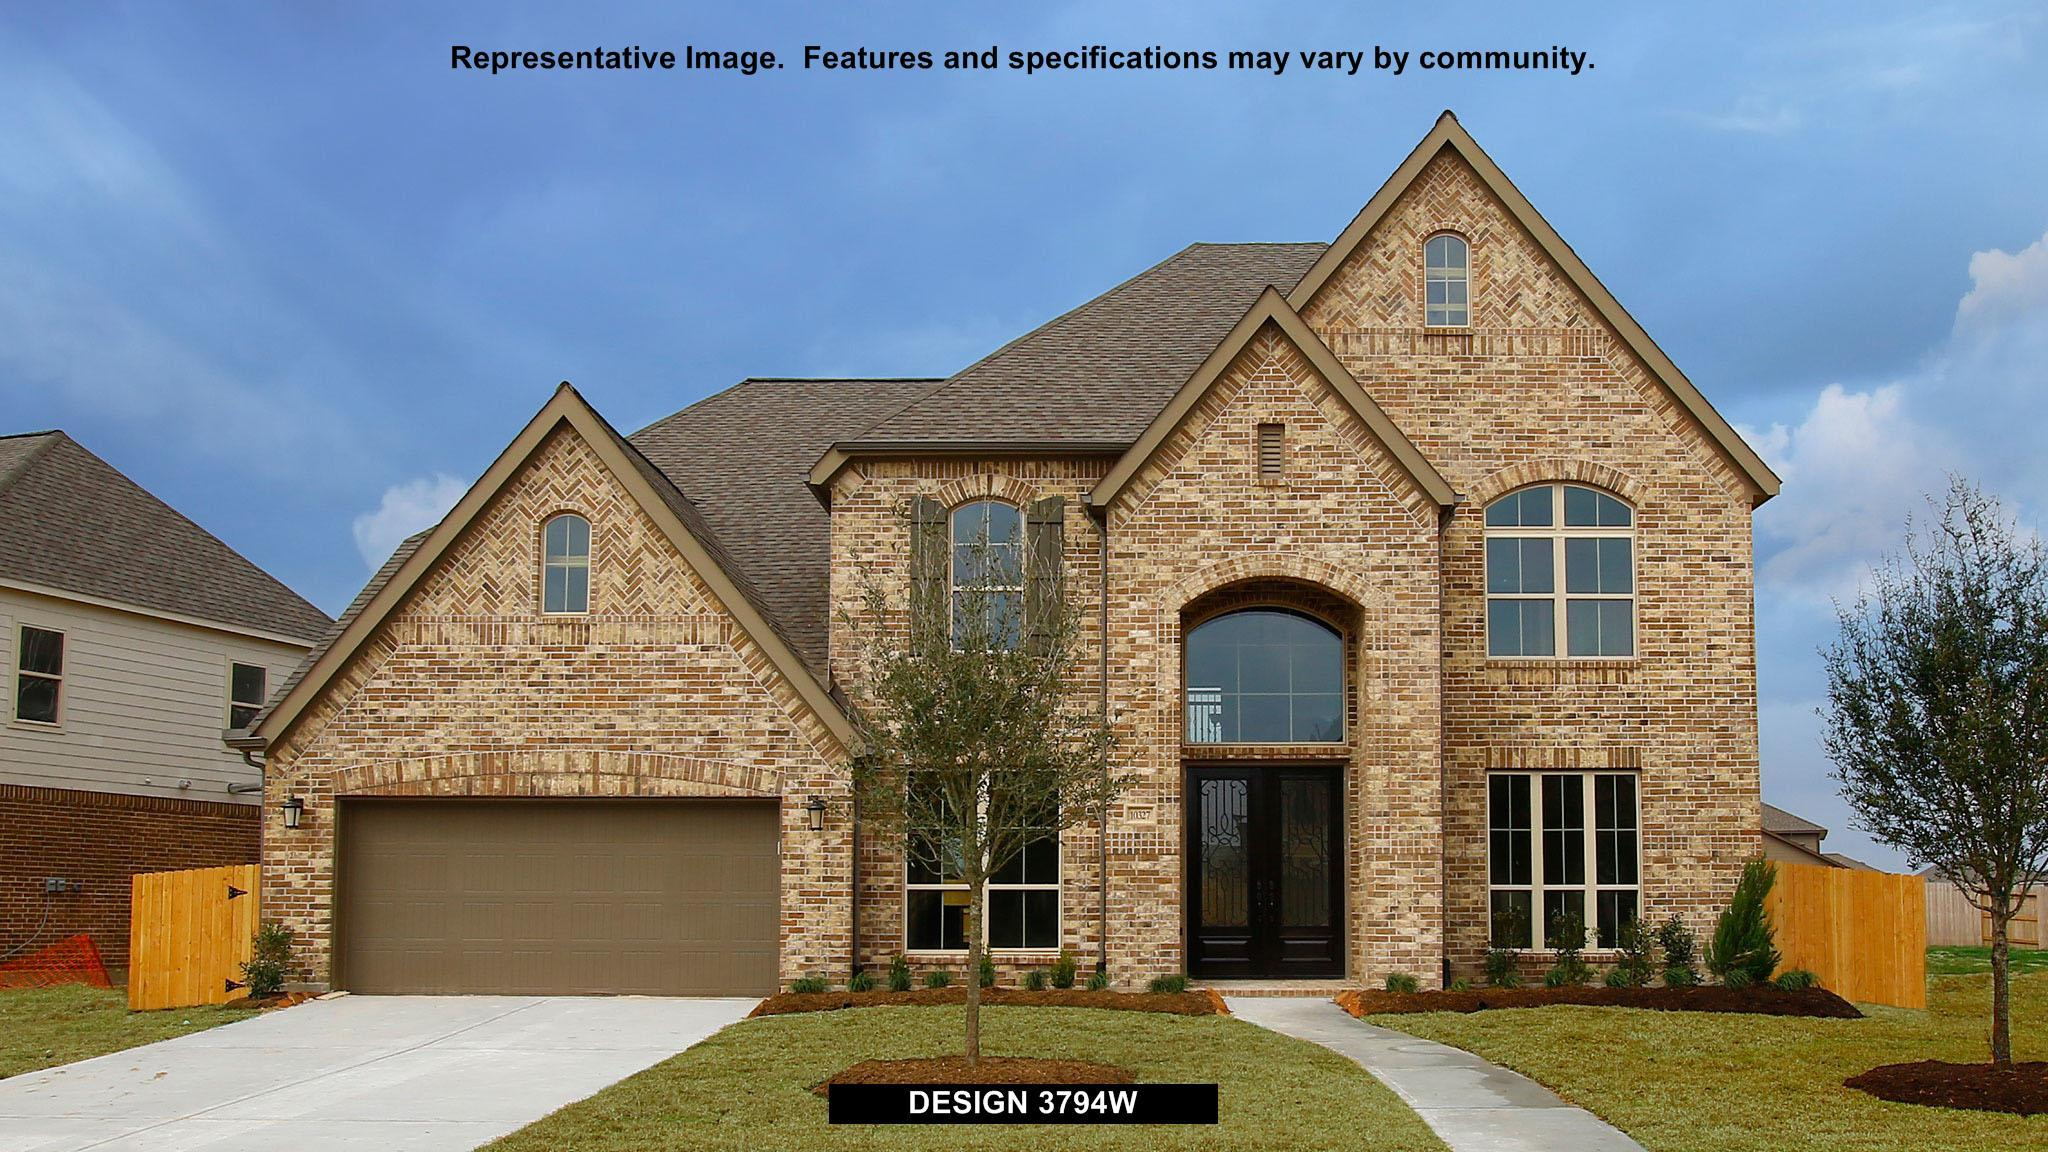 3794W - Riverstone 65': Sugar Land, TX - Perry Homes